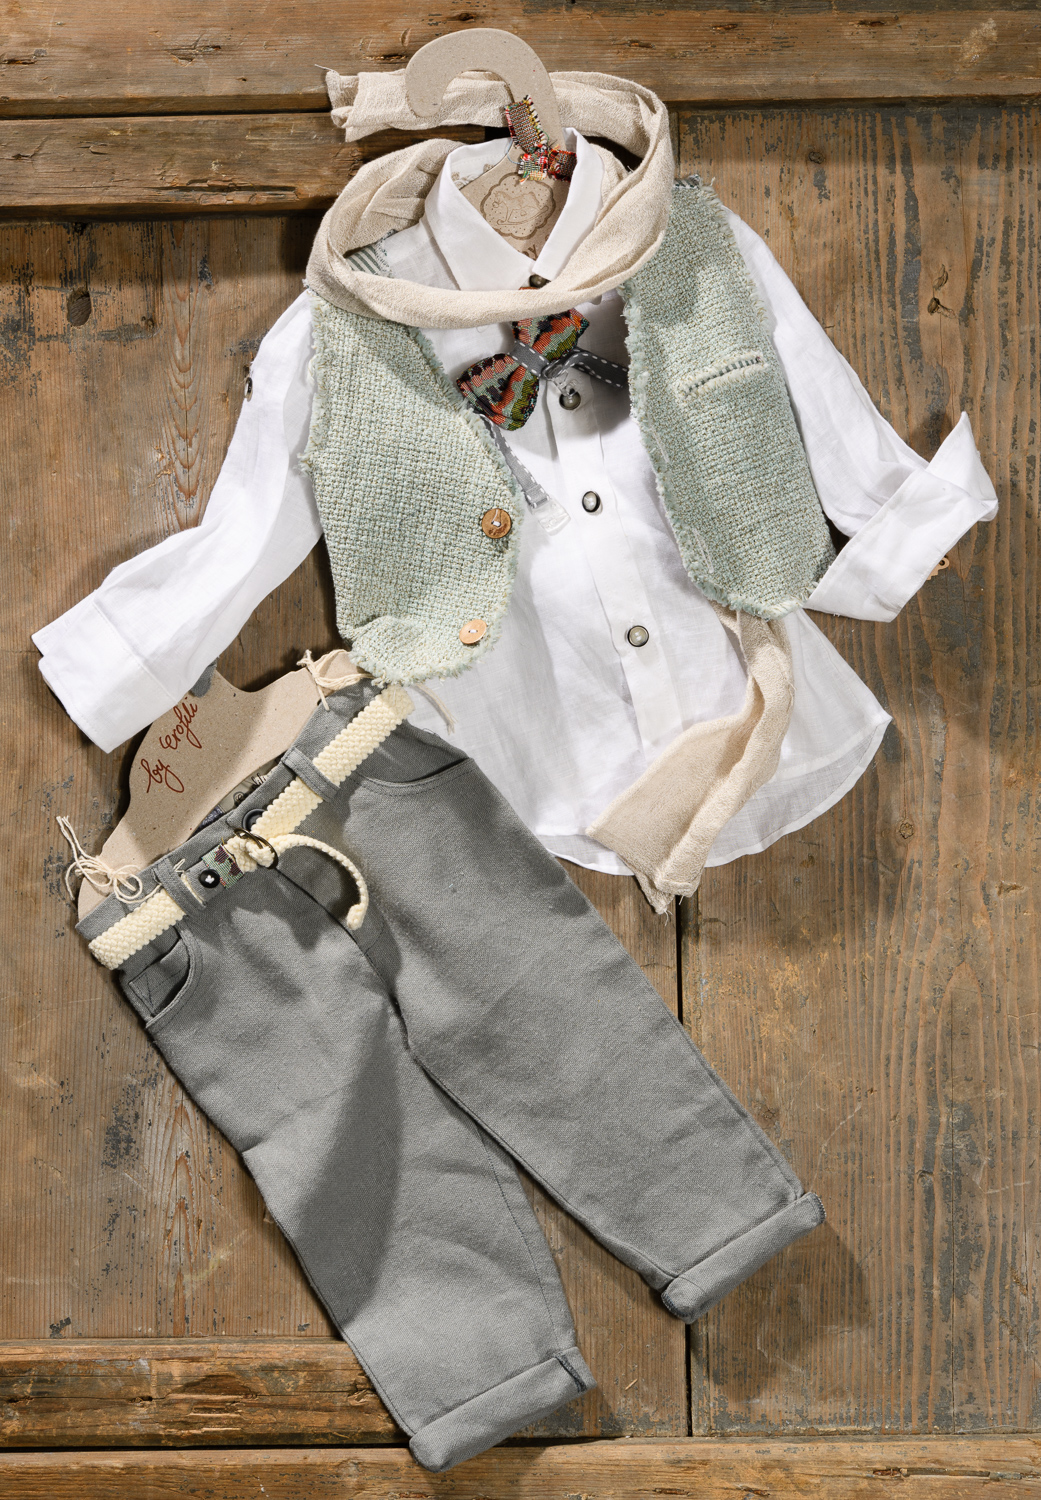 #vintage #mint #boyoutfit #christening